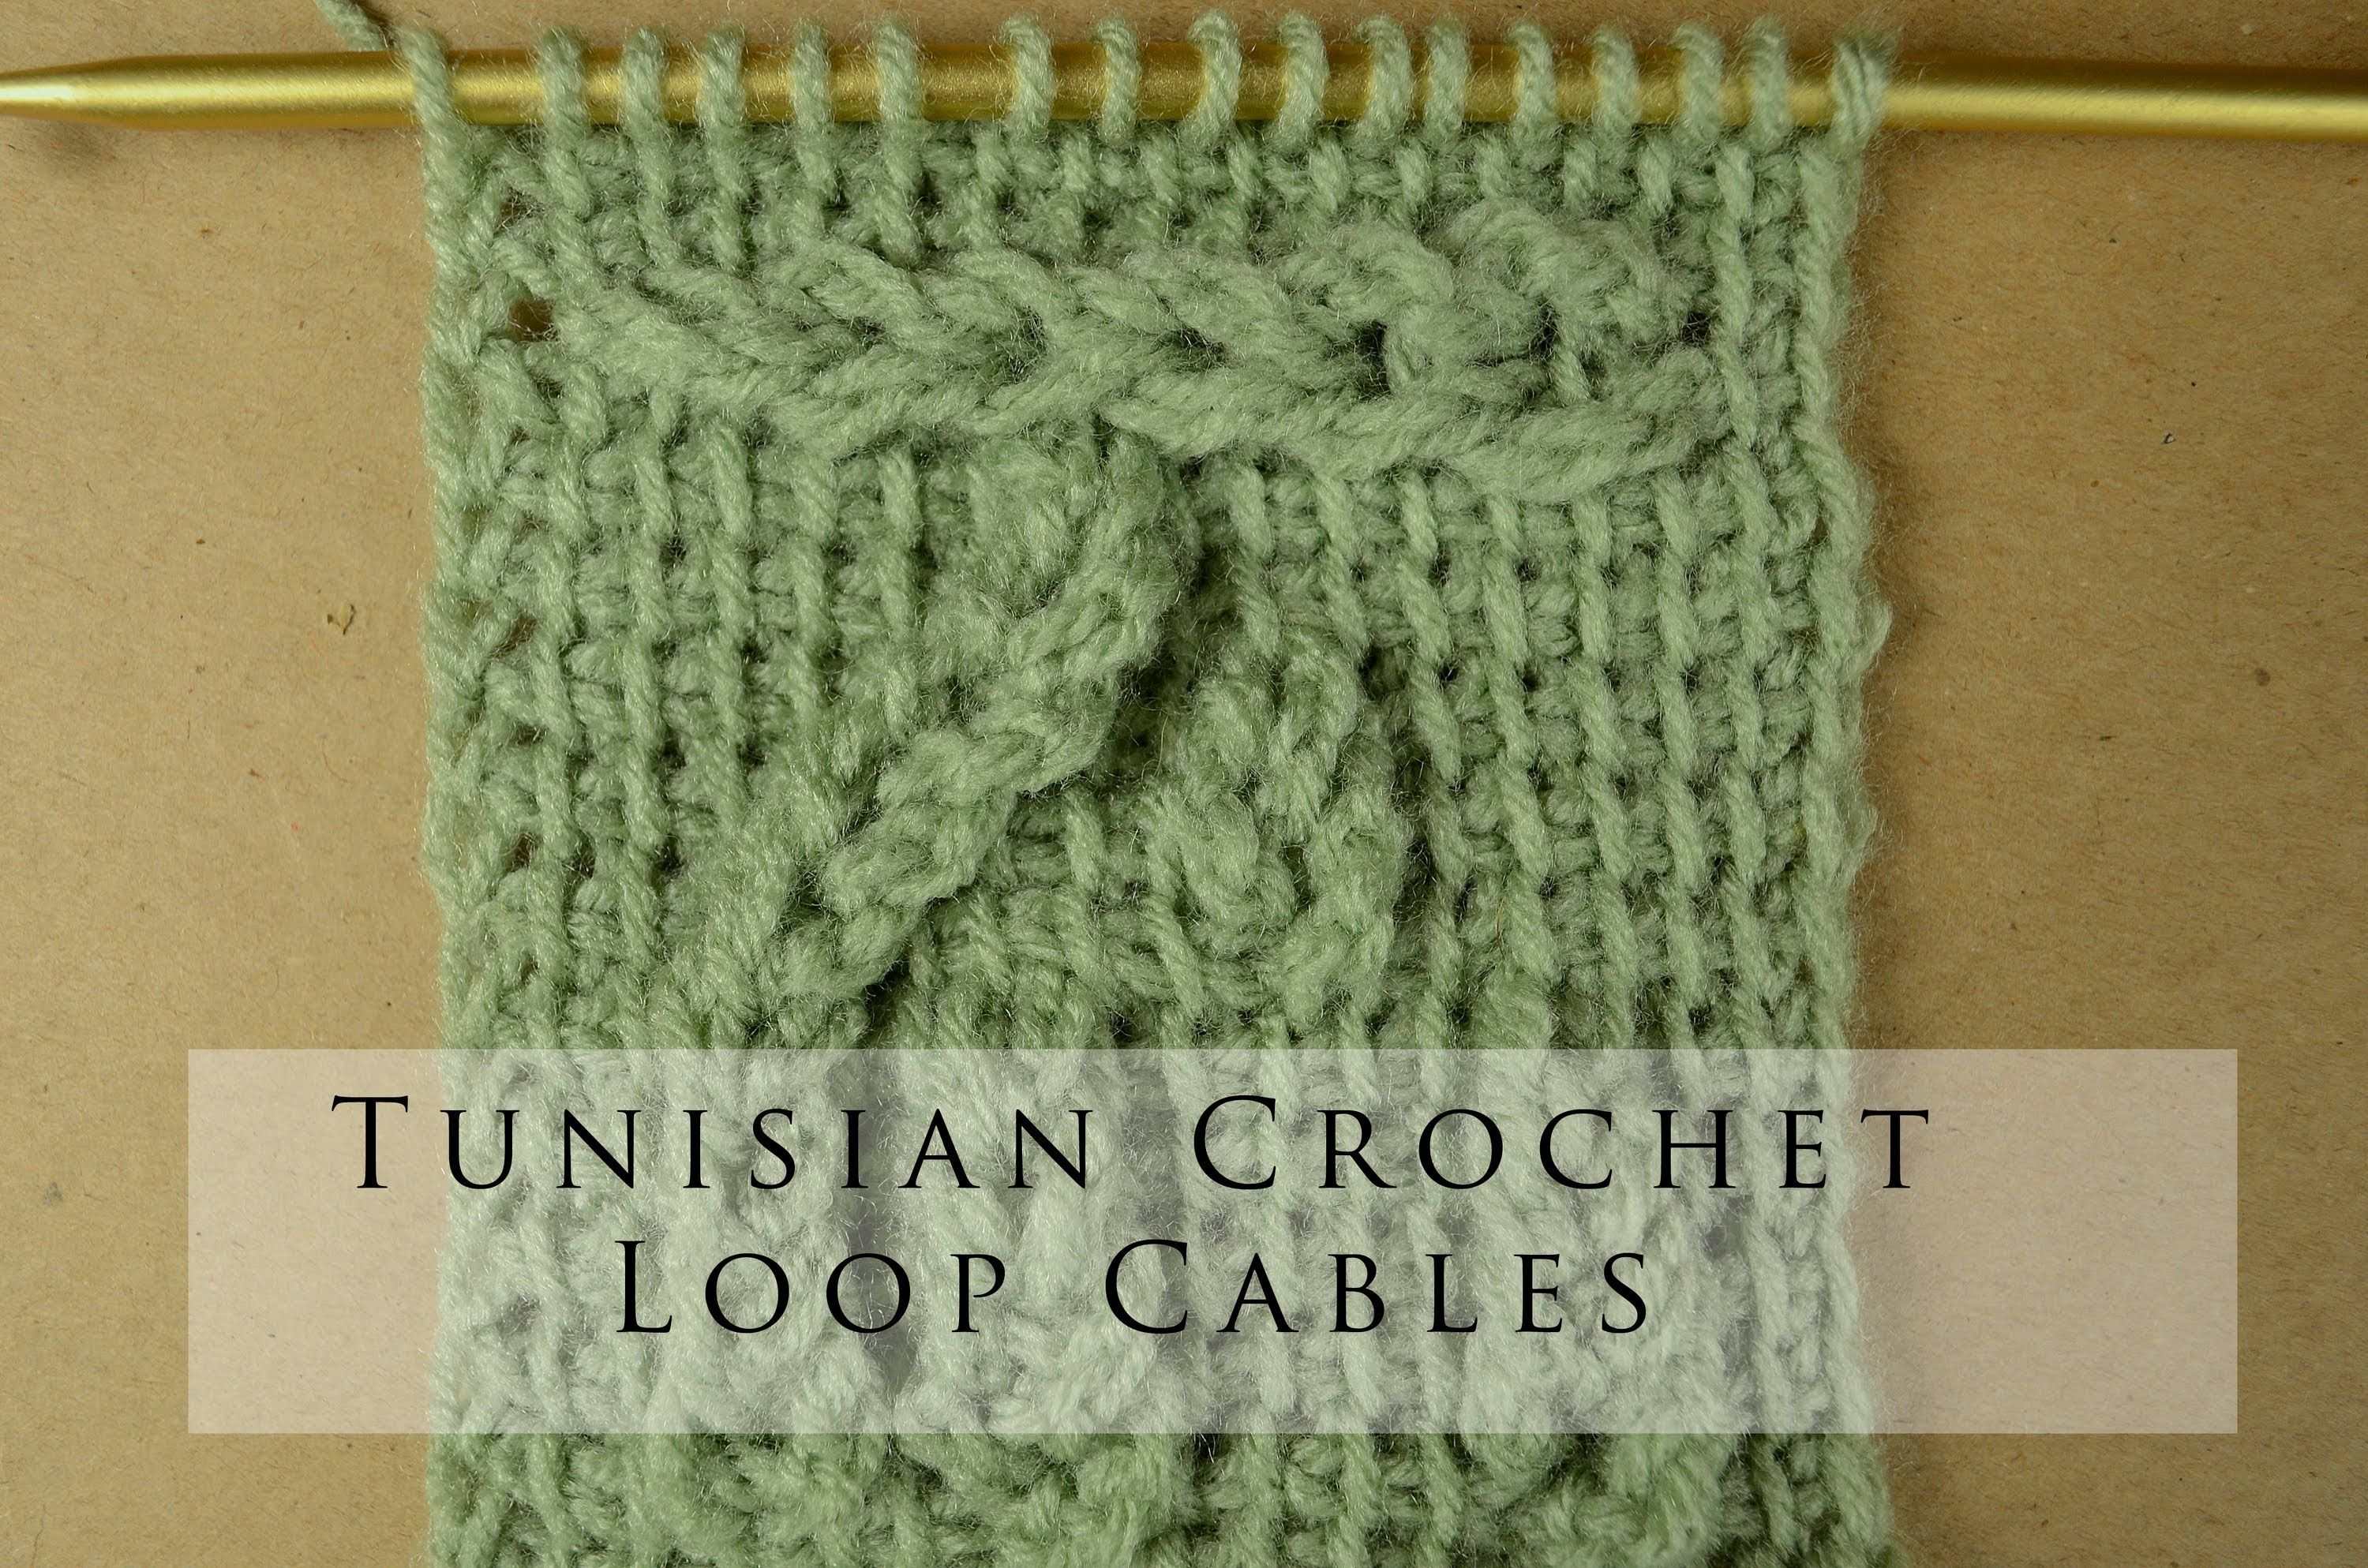 For more tunisian crochet stitches and patterns visit tuncro for more tunisian crochet stitches and patterns visit tuncrospot bankloansurffo Images